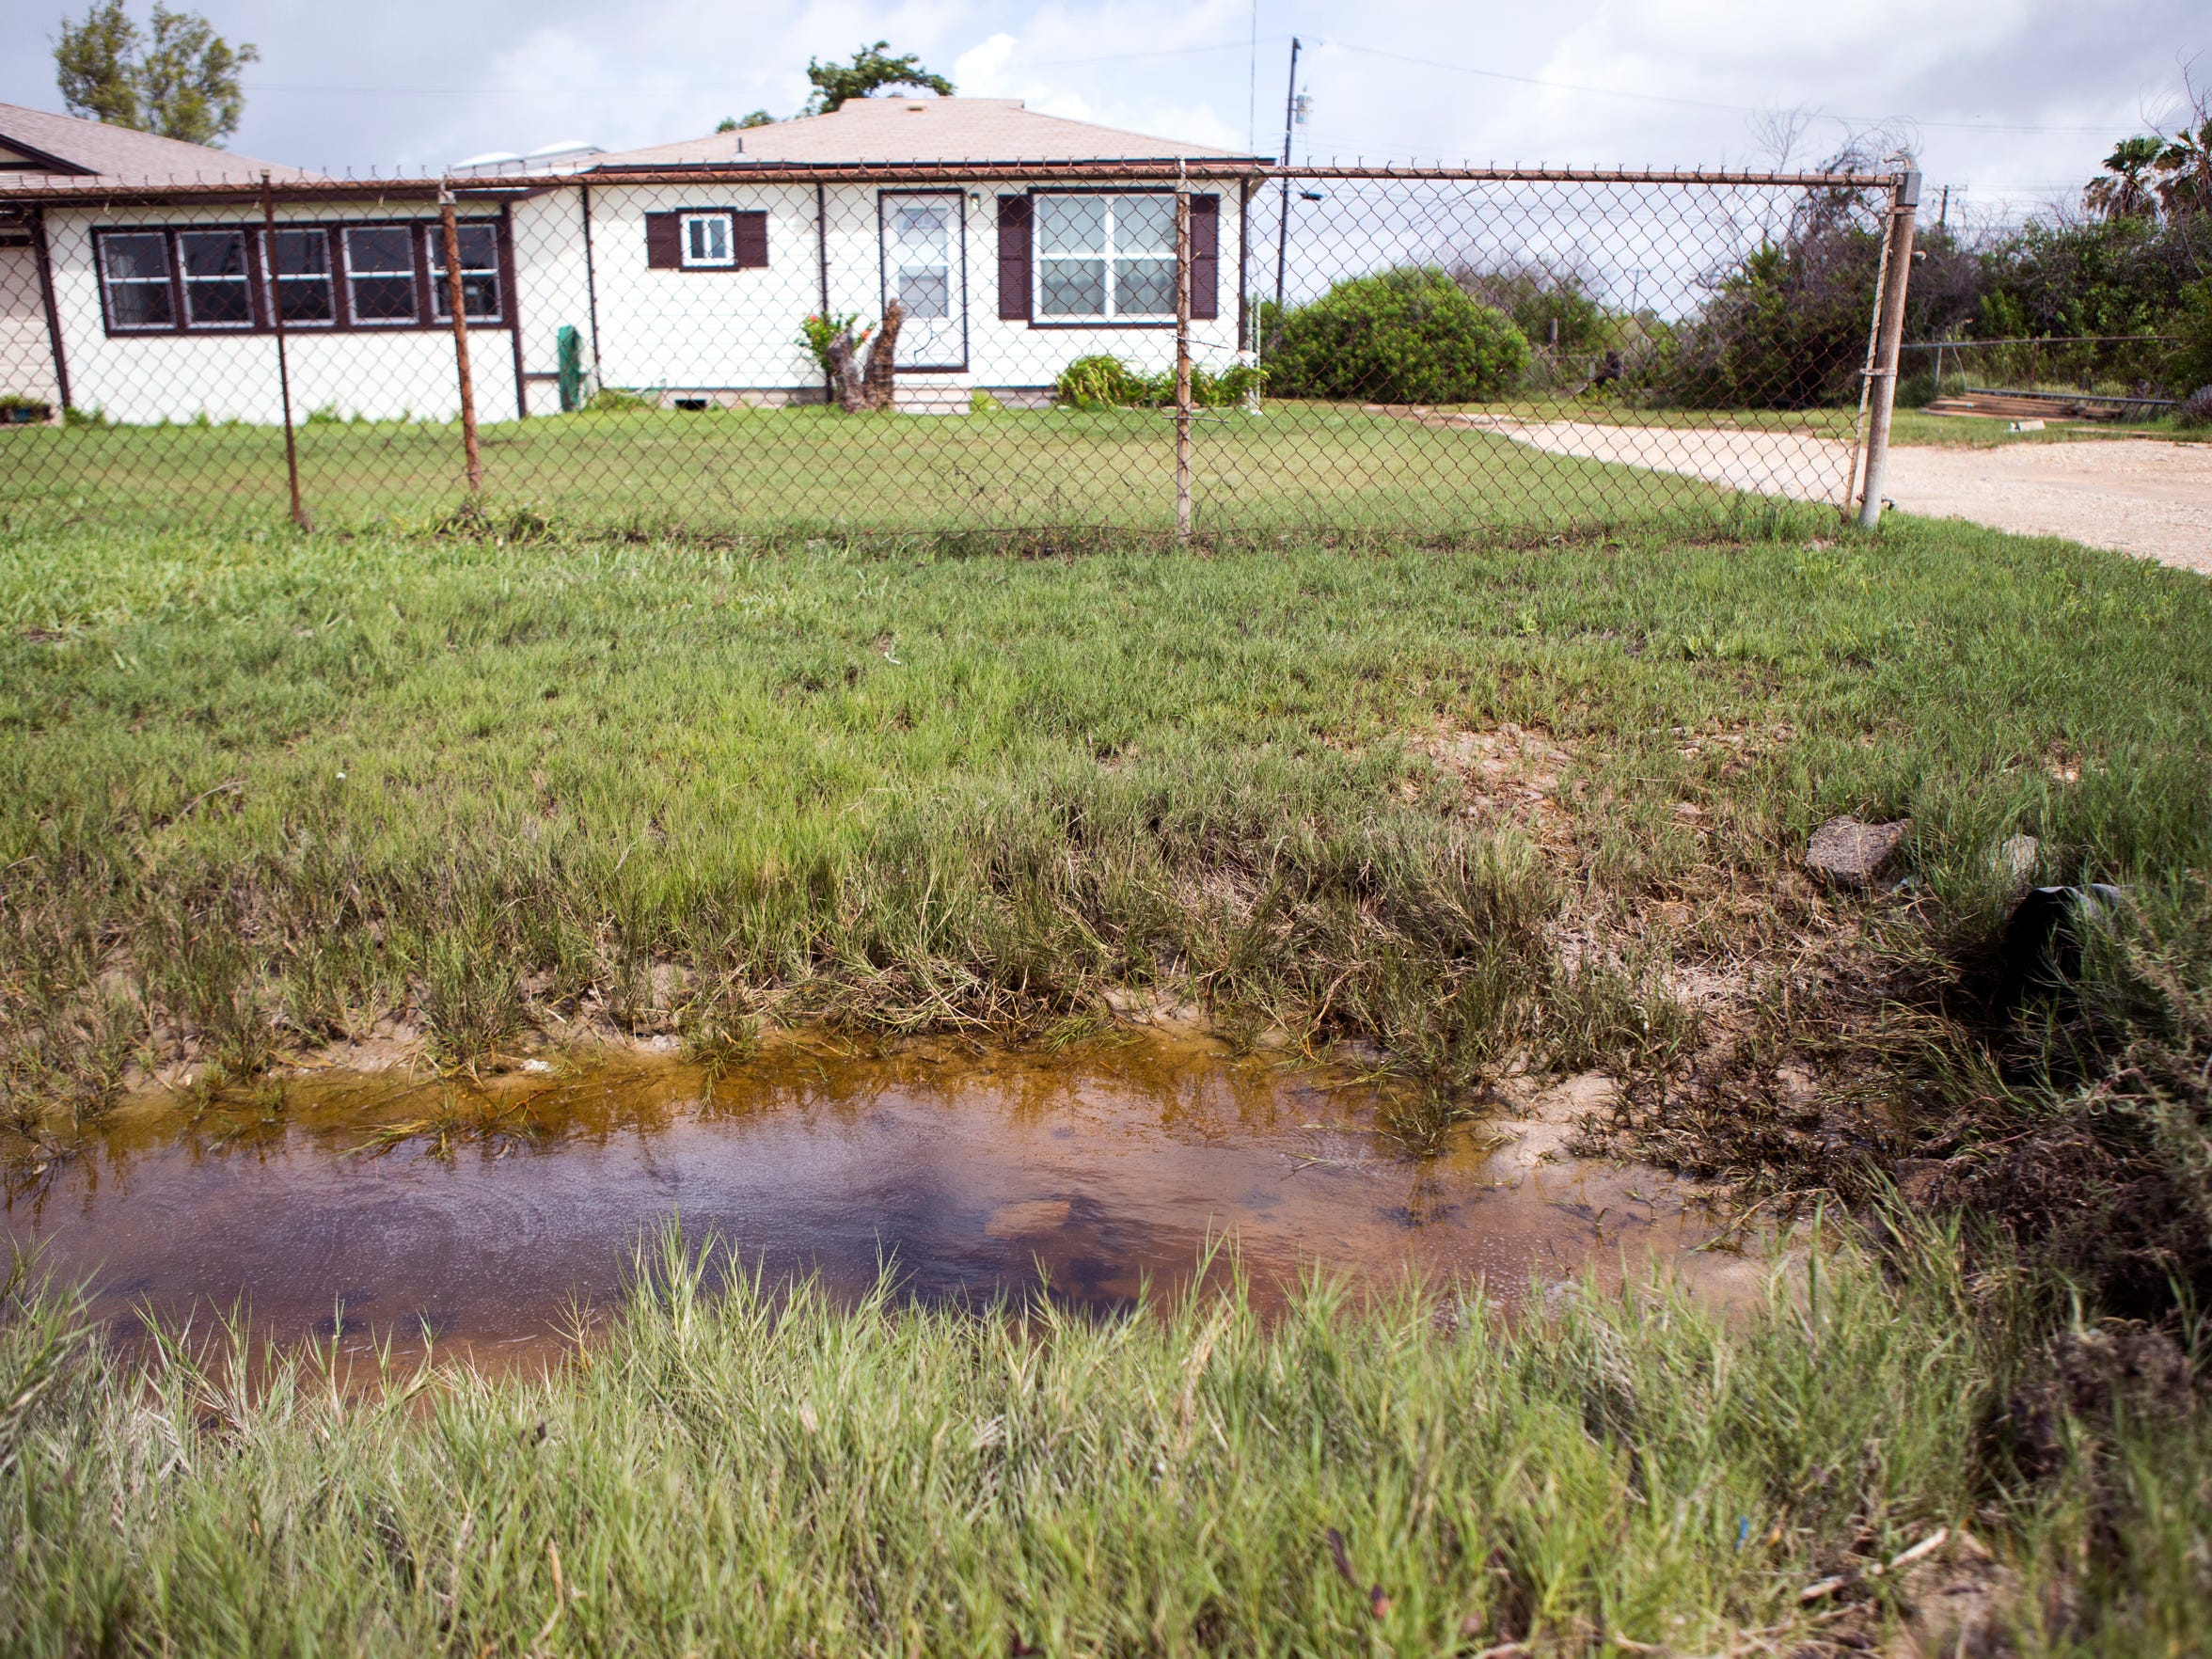 Hope Comingore is a long-time resident of Aransas Pass who lives just above the seawall. She has flooded repeatedly over the several years she has lived in her home, she said Monday, June 25, 2018. She said that the water from all of downtown and the flats runs across her property as it is pumped out. She applied for an SBA loan to raise her home, but the amount was too low. The seawall in Aransas Pass hasn't been certified, which could lead to higher flood insurance rates.